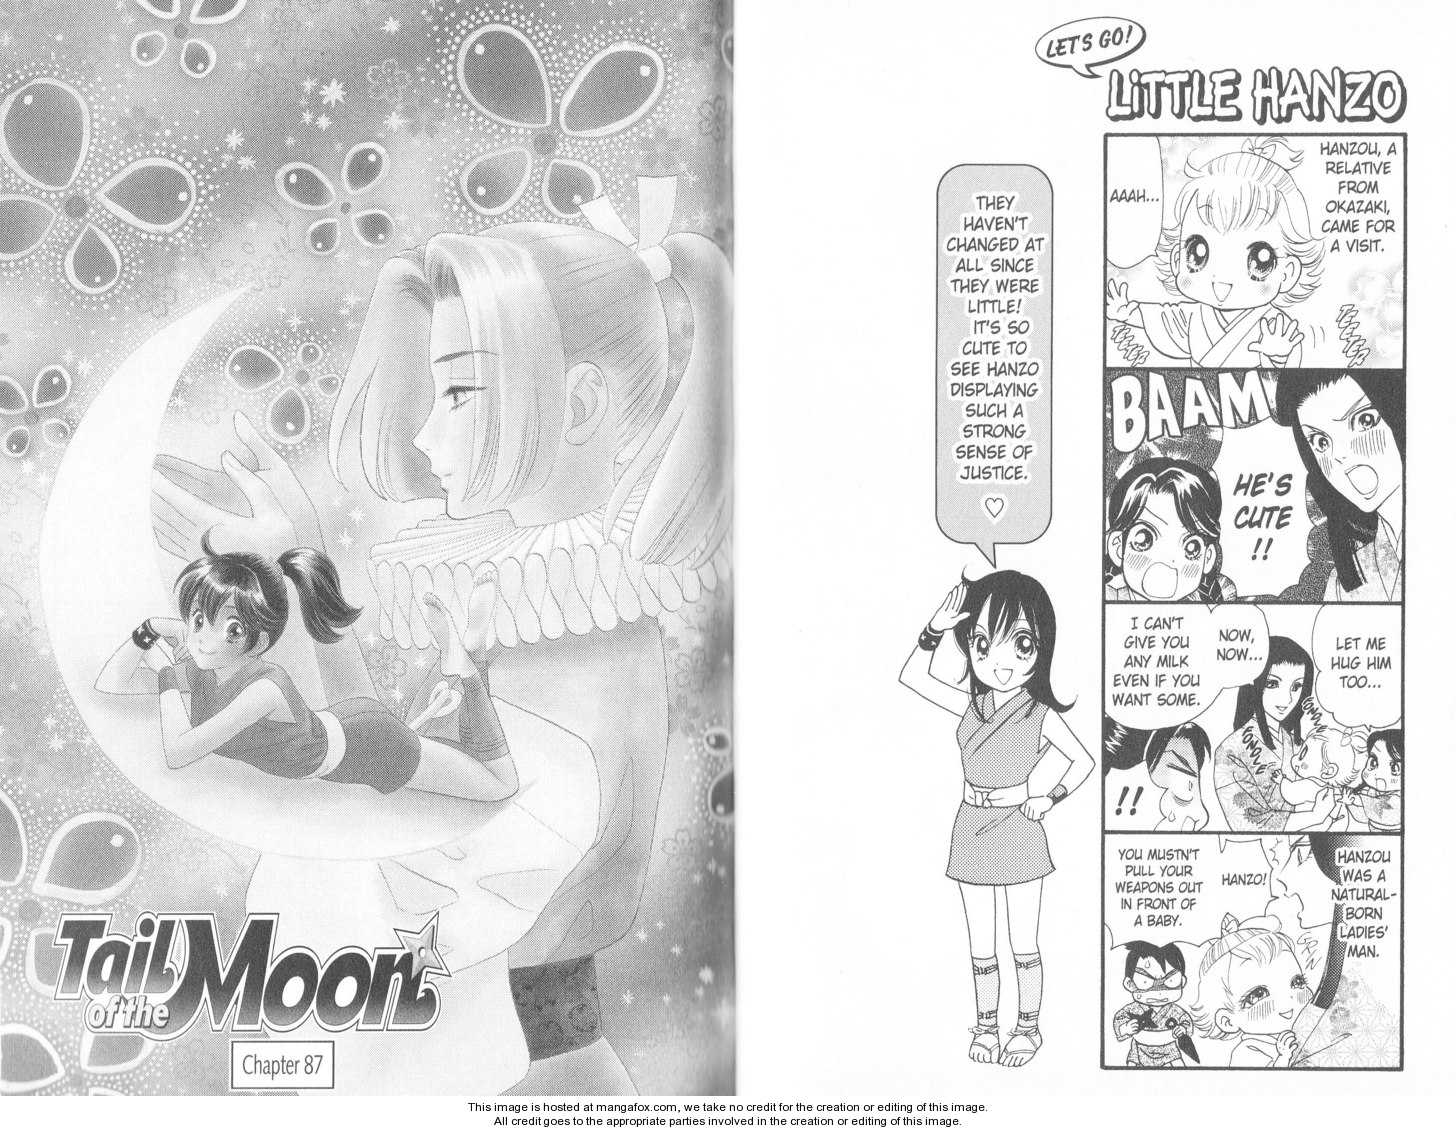 Tail of the Moon 87 Page 1